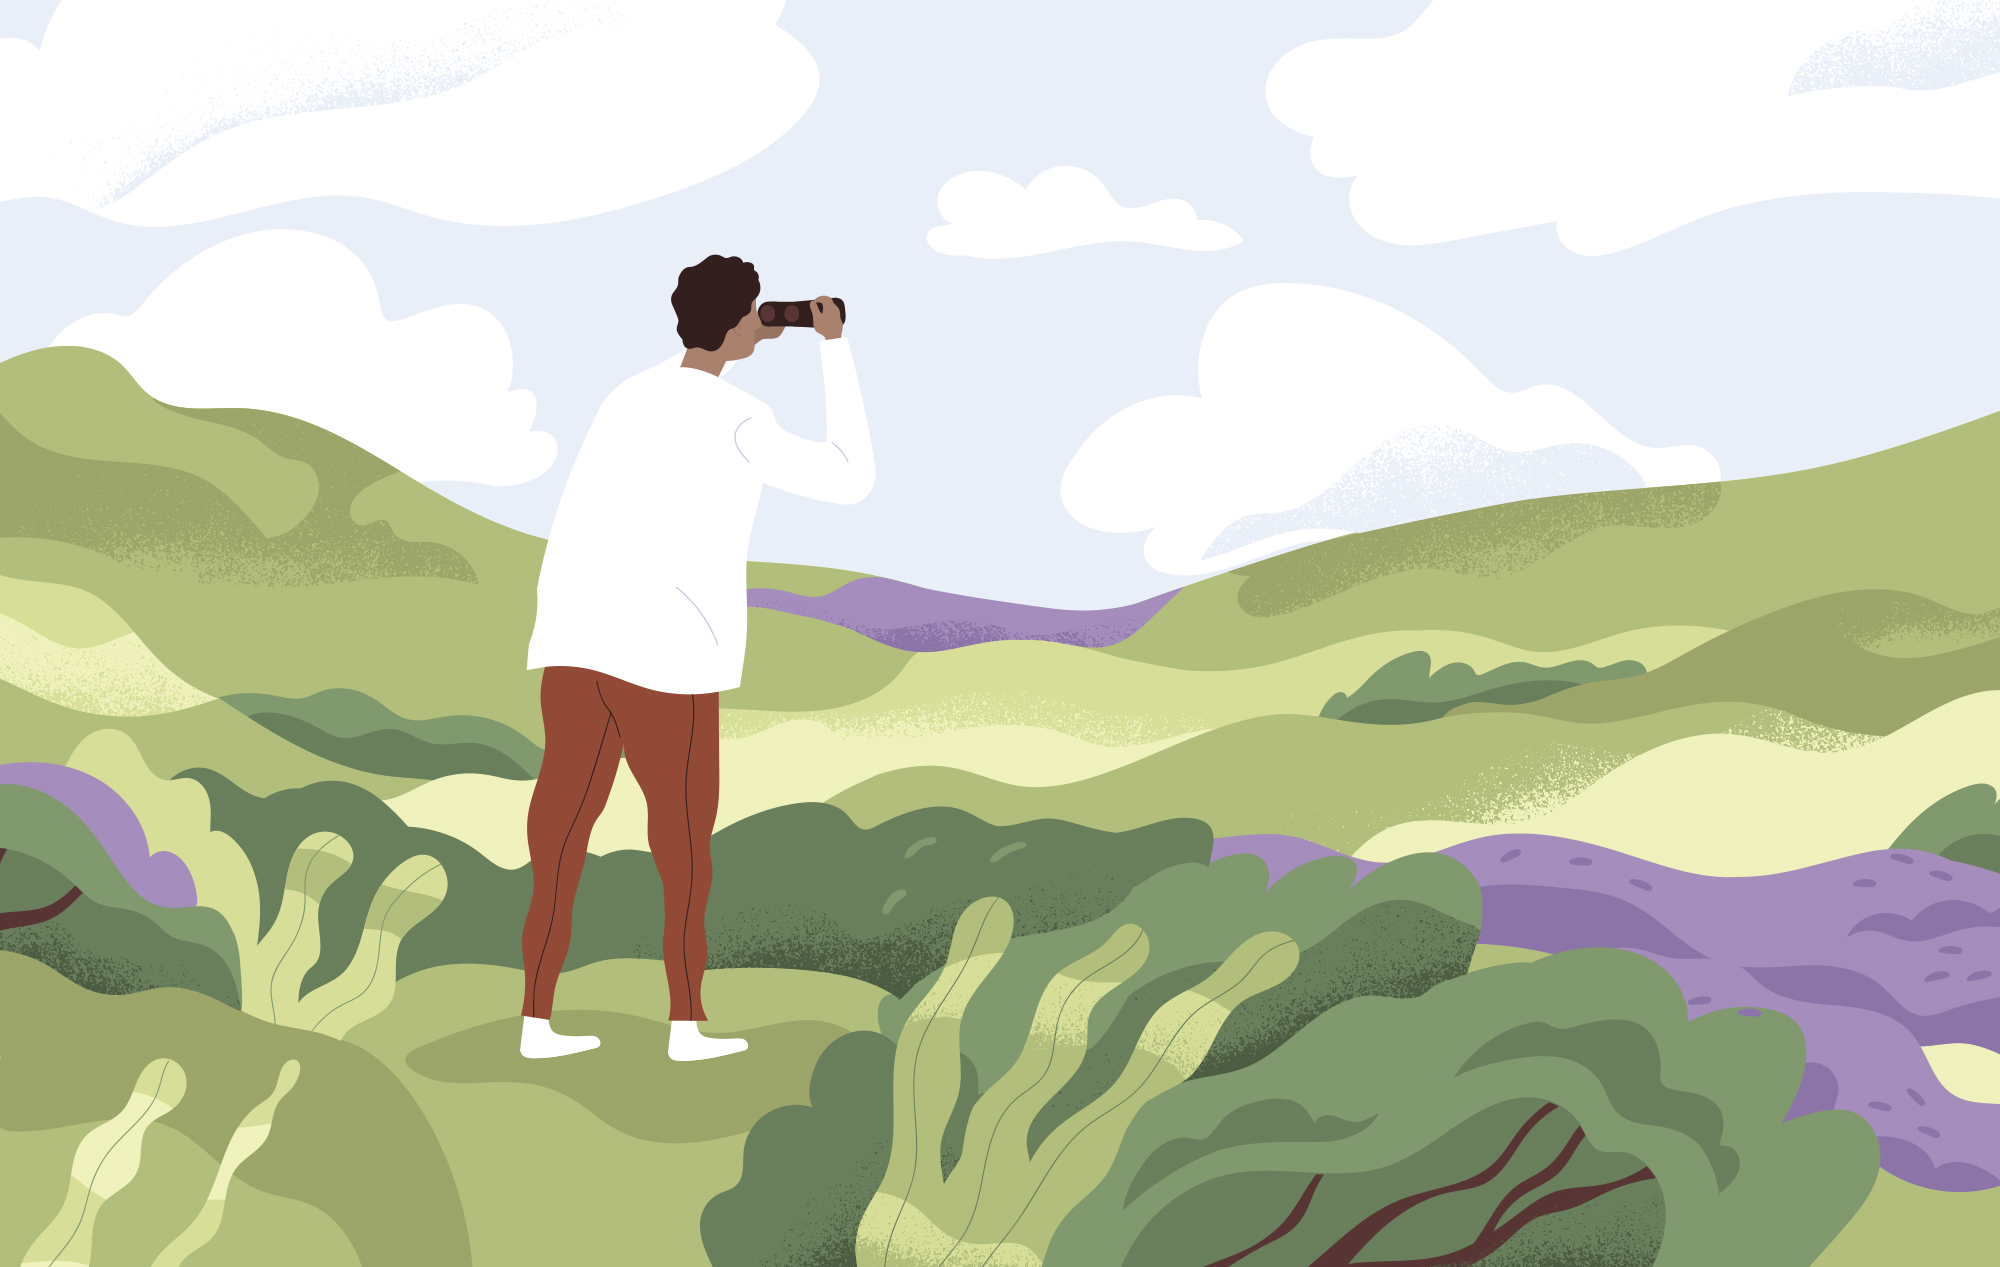 Illustration of a person standing in a field, surrounded by rolling green hills and bushes. The person is looking into a telescope at the horizon.